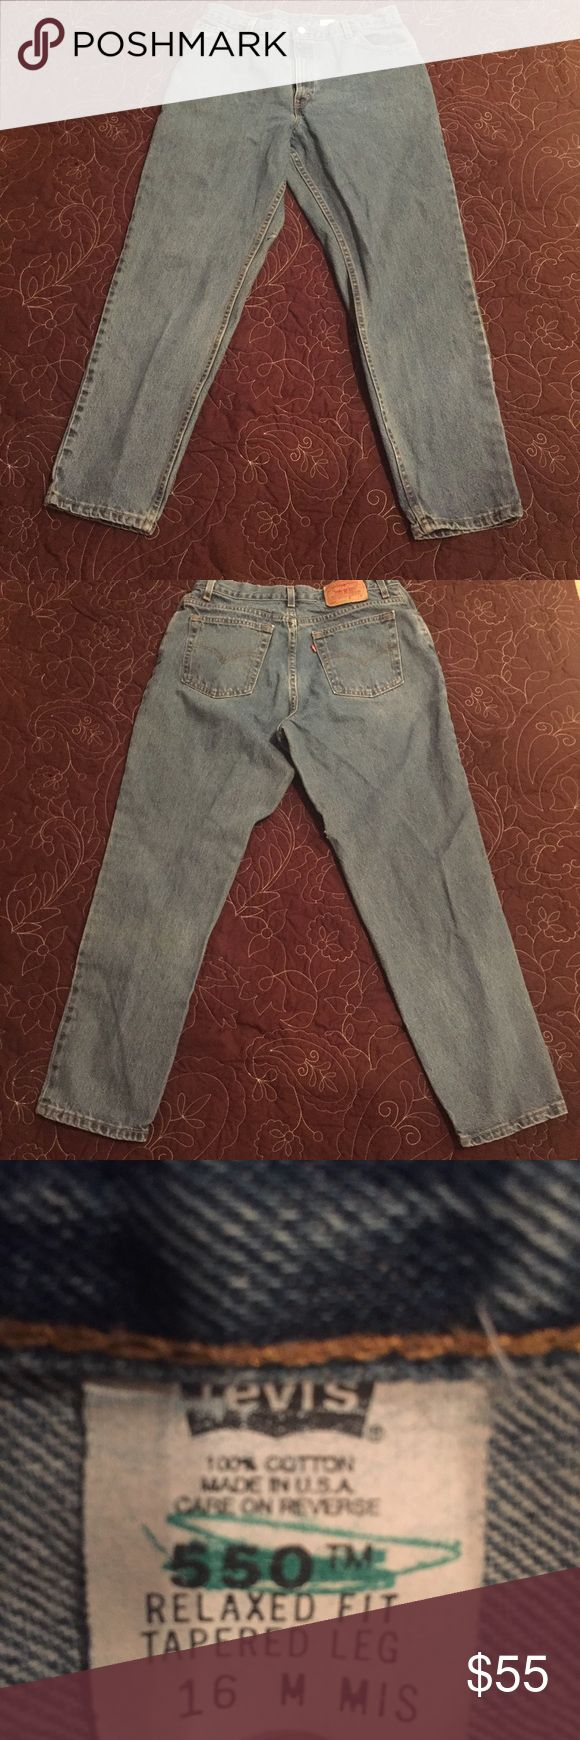 Levi's 550 16M Mis Relaxed Fit Tapered Jeans USA Levi's 550 16M Mis Relaxed Fit Tapered Leg Blue Jeans Made In USA. Small amount of fraying seen on leg. Please see pictures Levi's Jeans Straight Leg